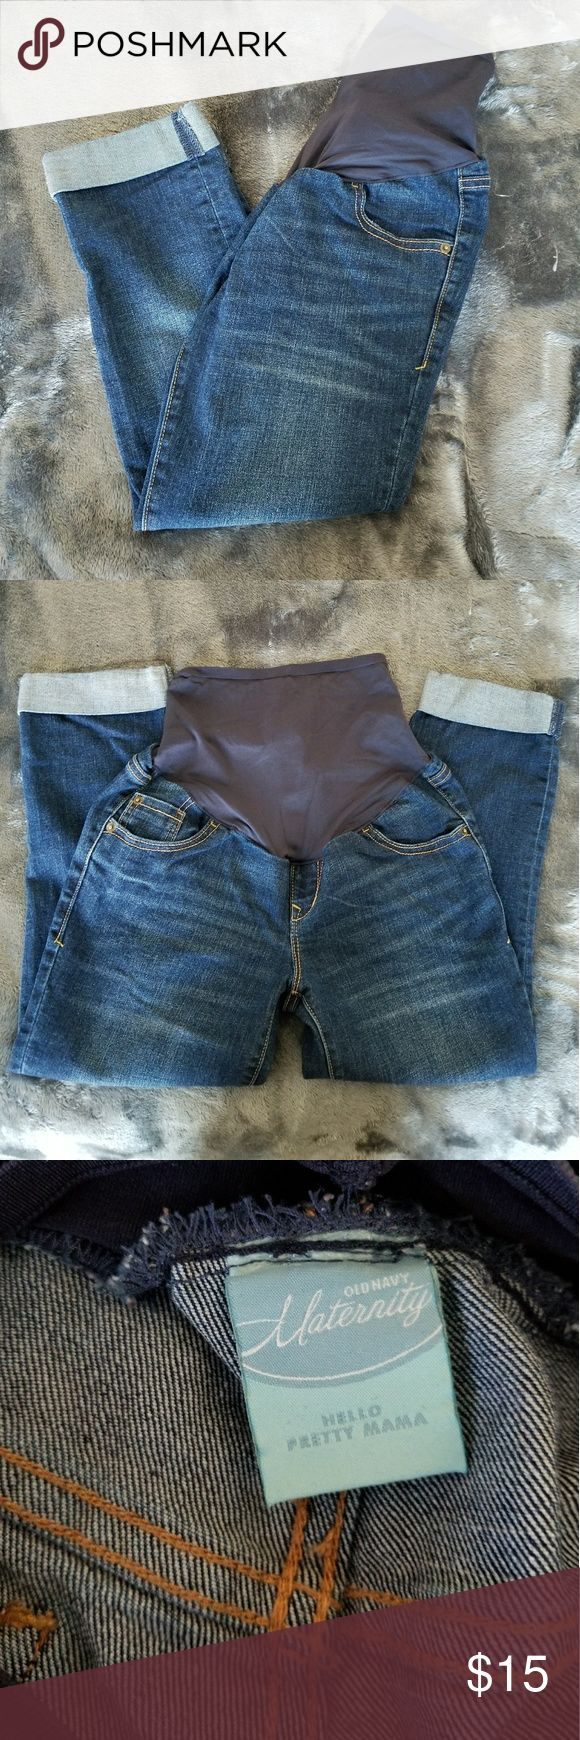 Old Navy Maternity Jeans Capris Size 2 Regular Old Navy Maternity Jeans Capris. Size 2 Regular. EUC- like new! Inseam measures 22 inches.  BUNDLE AND SAVE! Old Navy Jeans